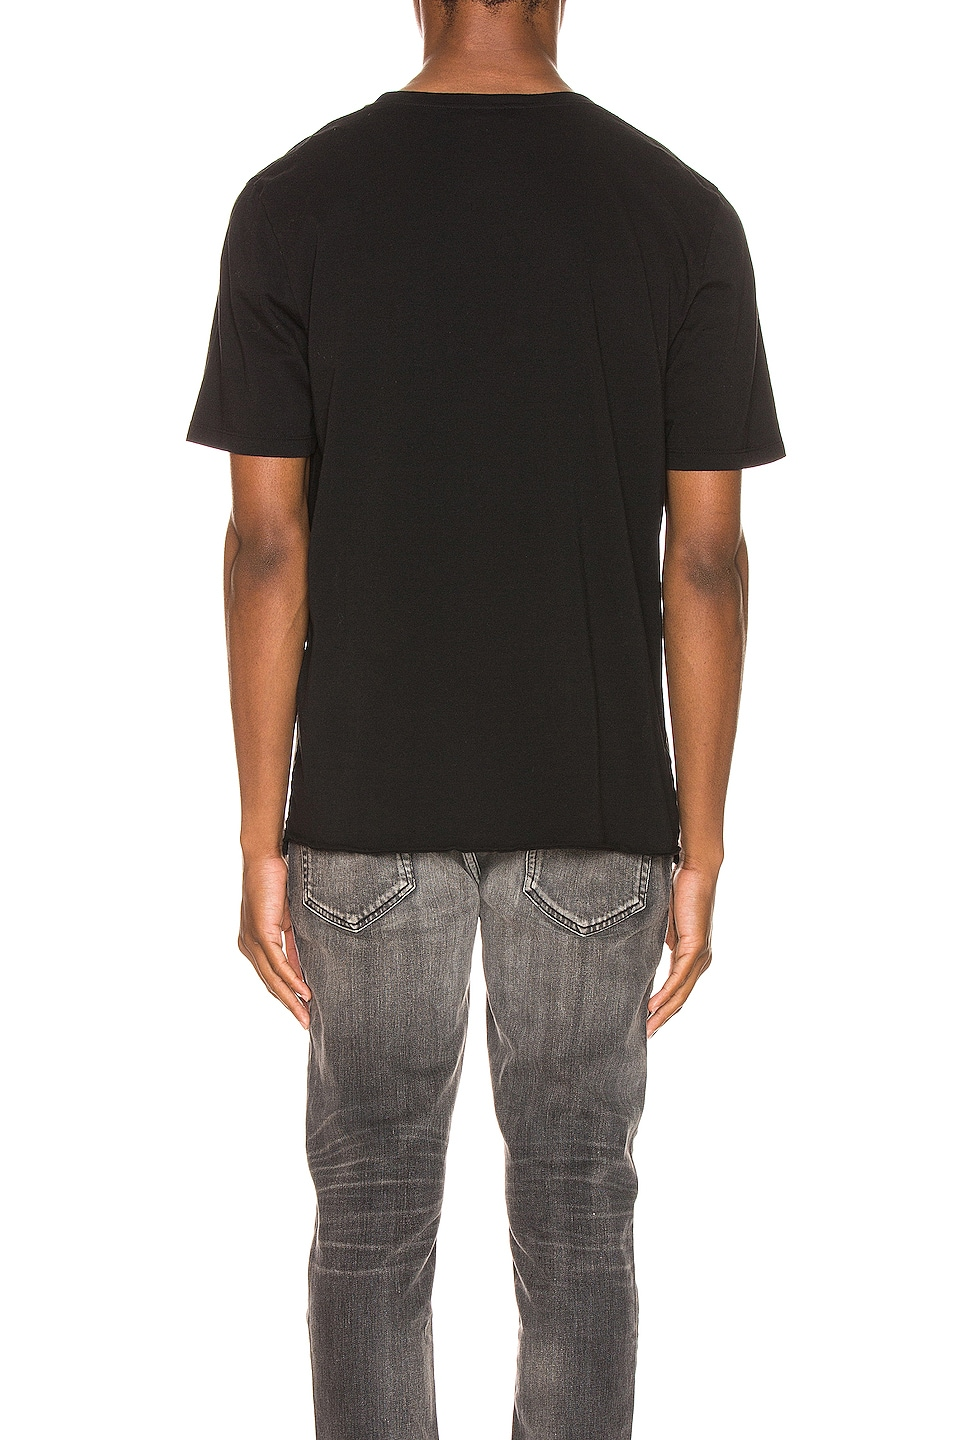 Image 3 of Saint Laurent The Smiths Tee in Black & Natural